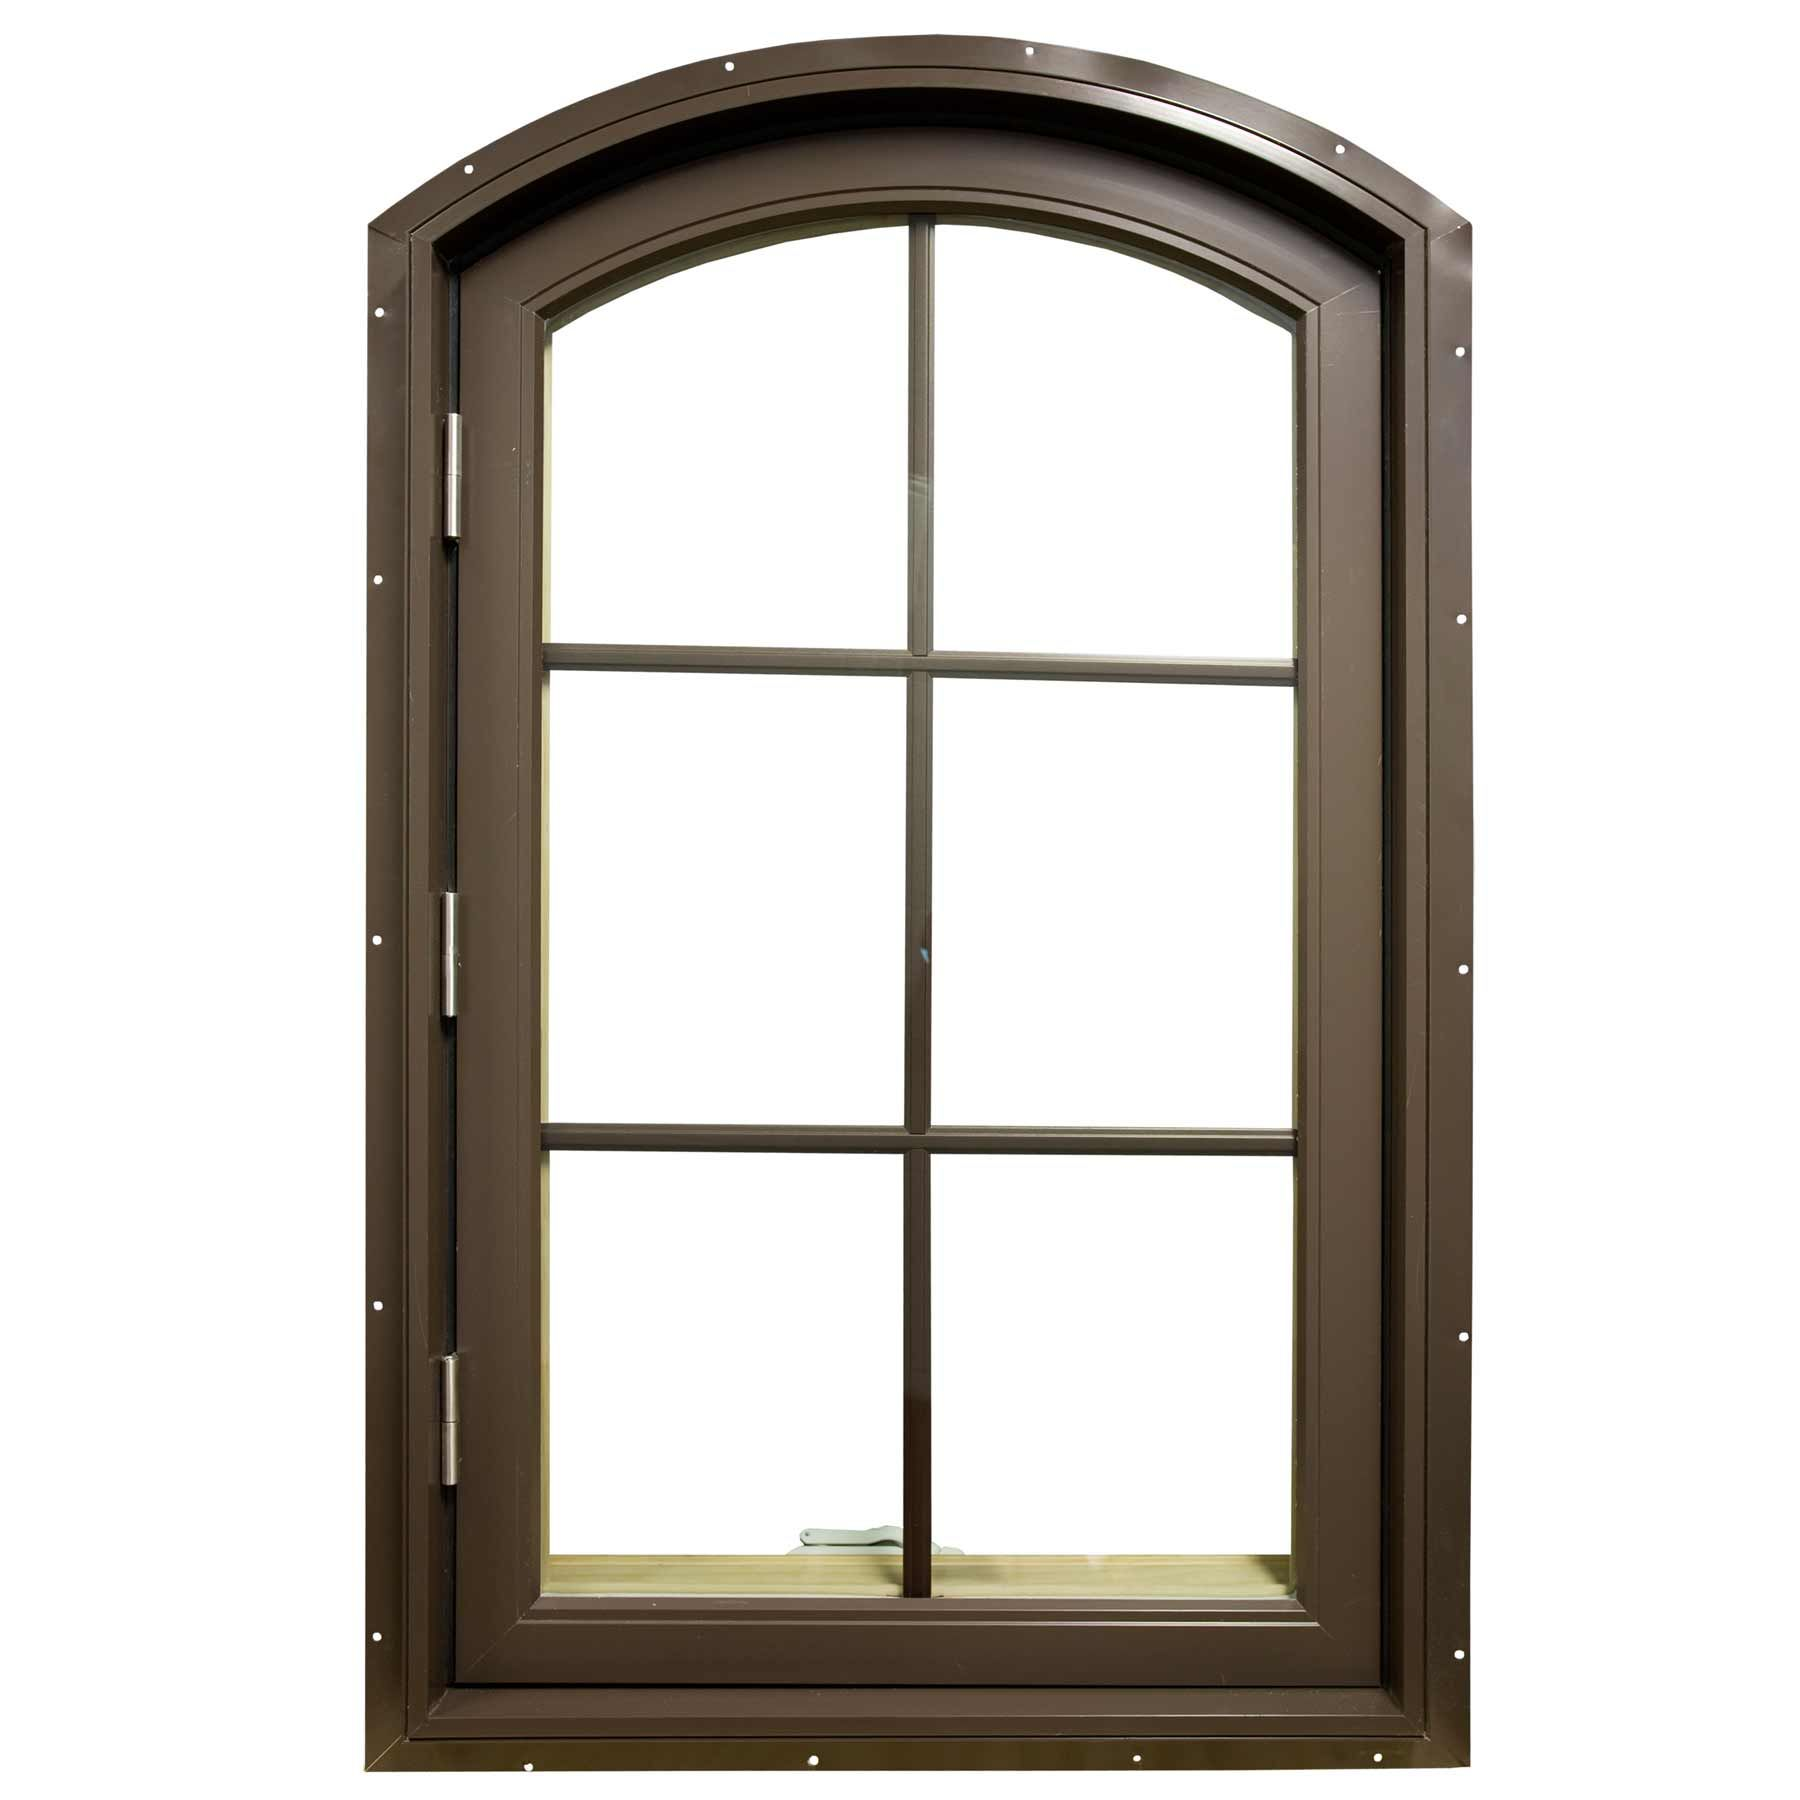 Aluminum casement windows for home feel the home for New windows and doors